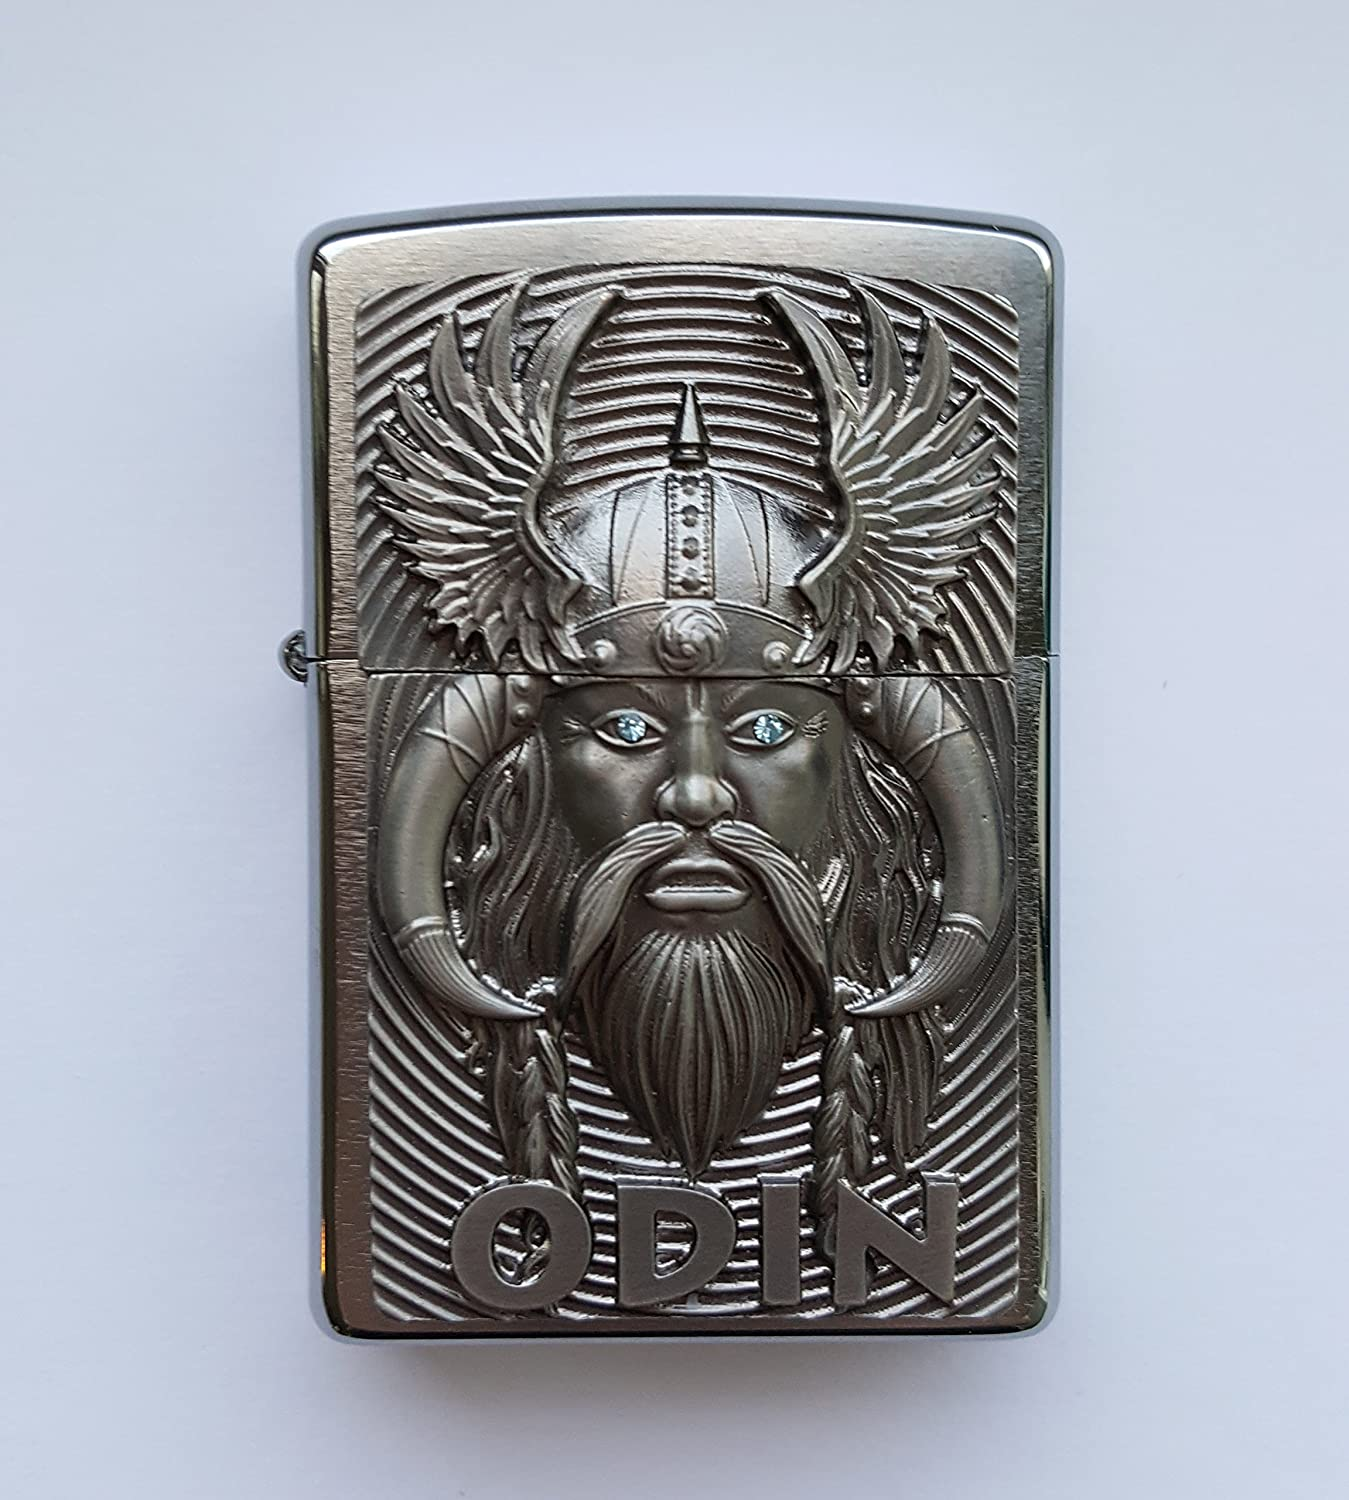 Zippo 2.005.286 Odin With Blue Eyes - Limited Edition 0001/1000 - Chrome brushed